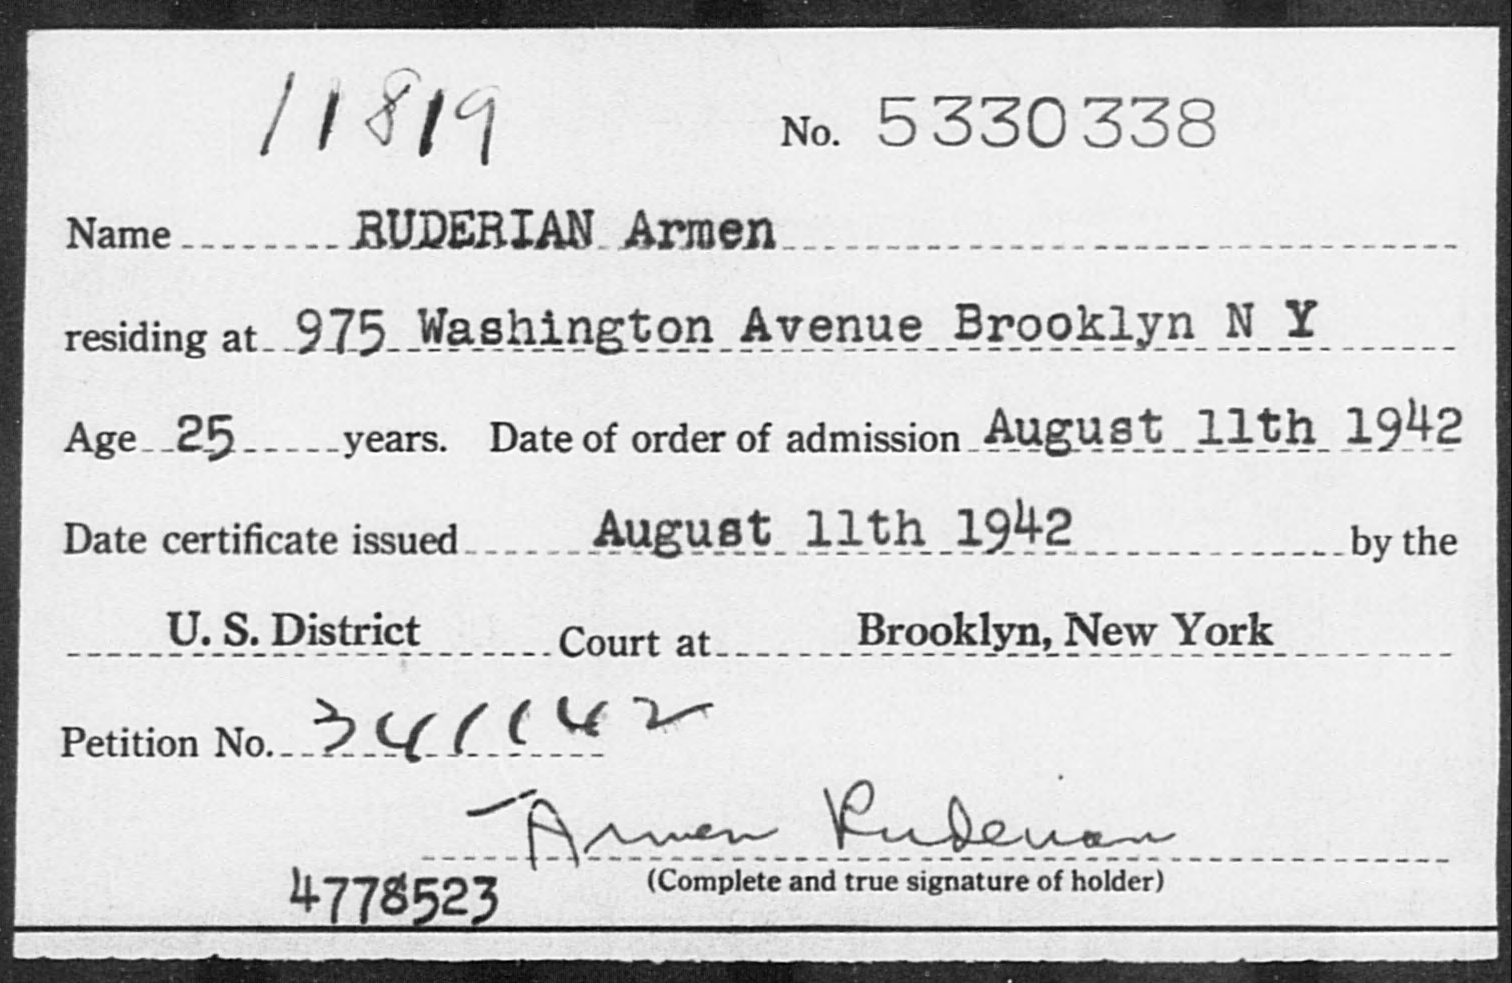 RUDERIAN Armen - Born: [BLANK], Naturalized: 1942